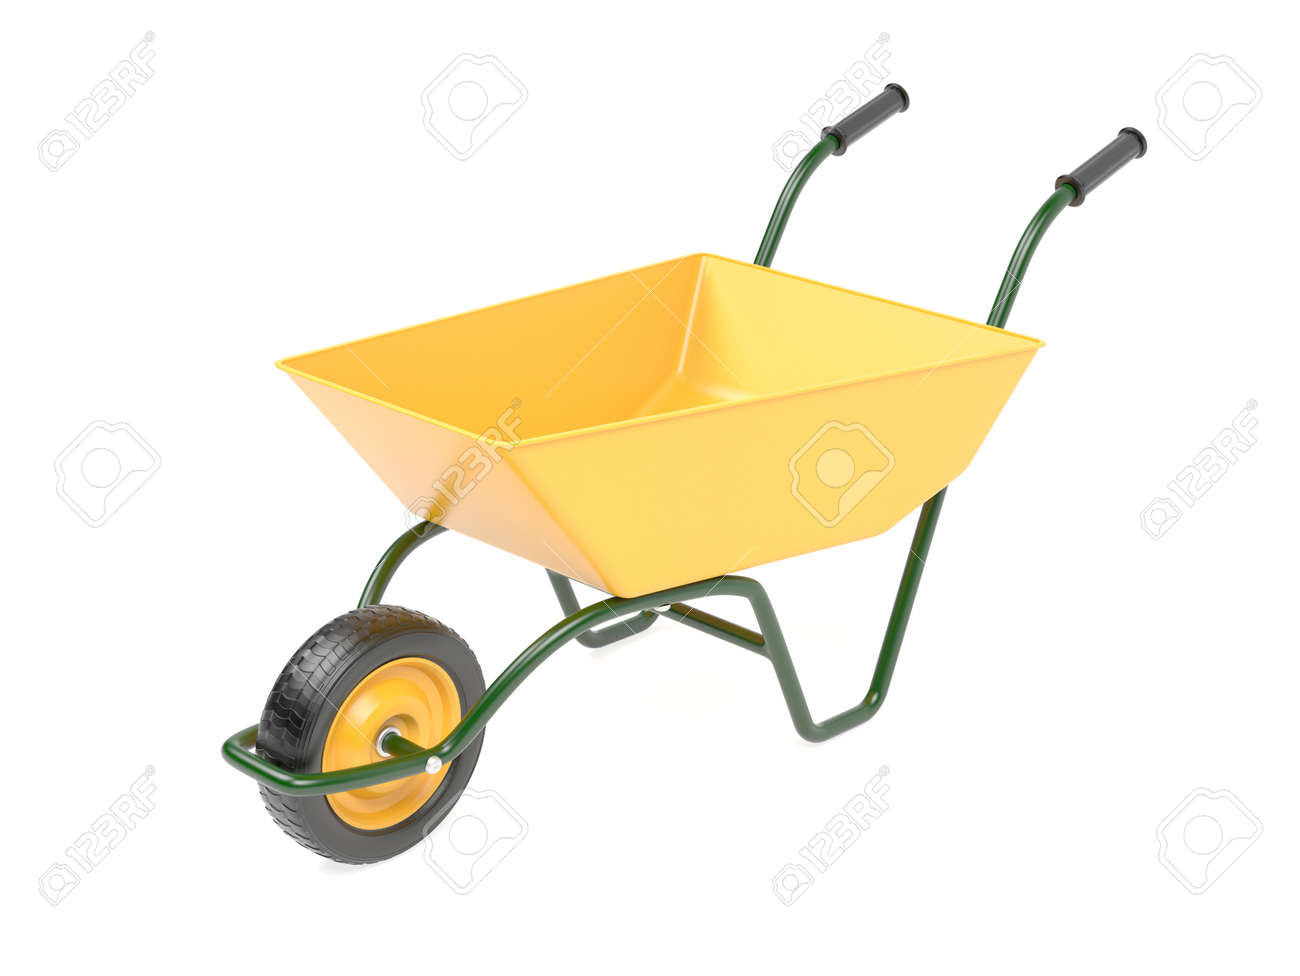 Yellow garden barrow. 3d rendering illustration isolated on white background - 150525425